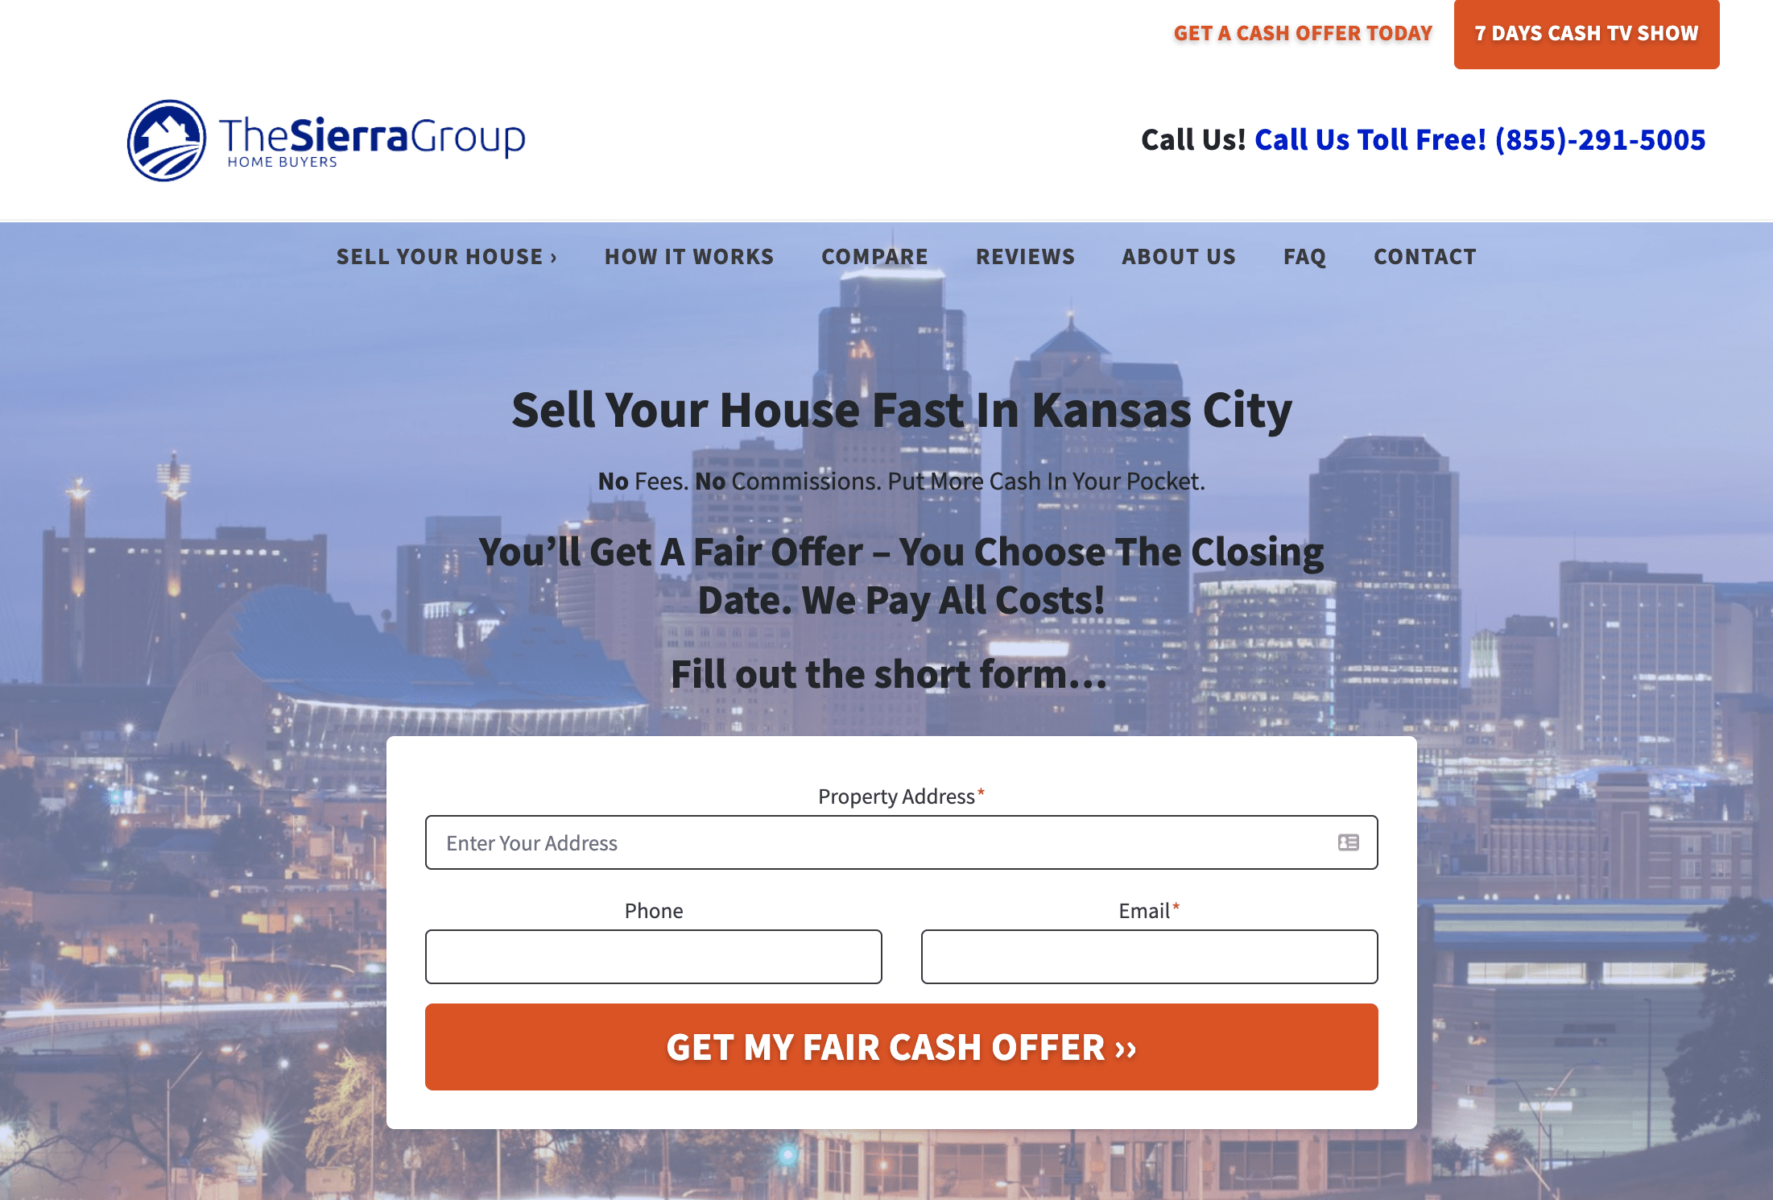 The Sierra Group Carrot Website